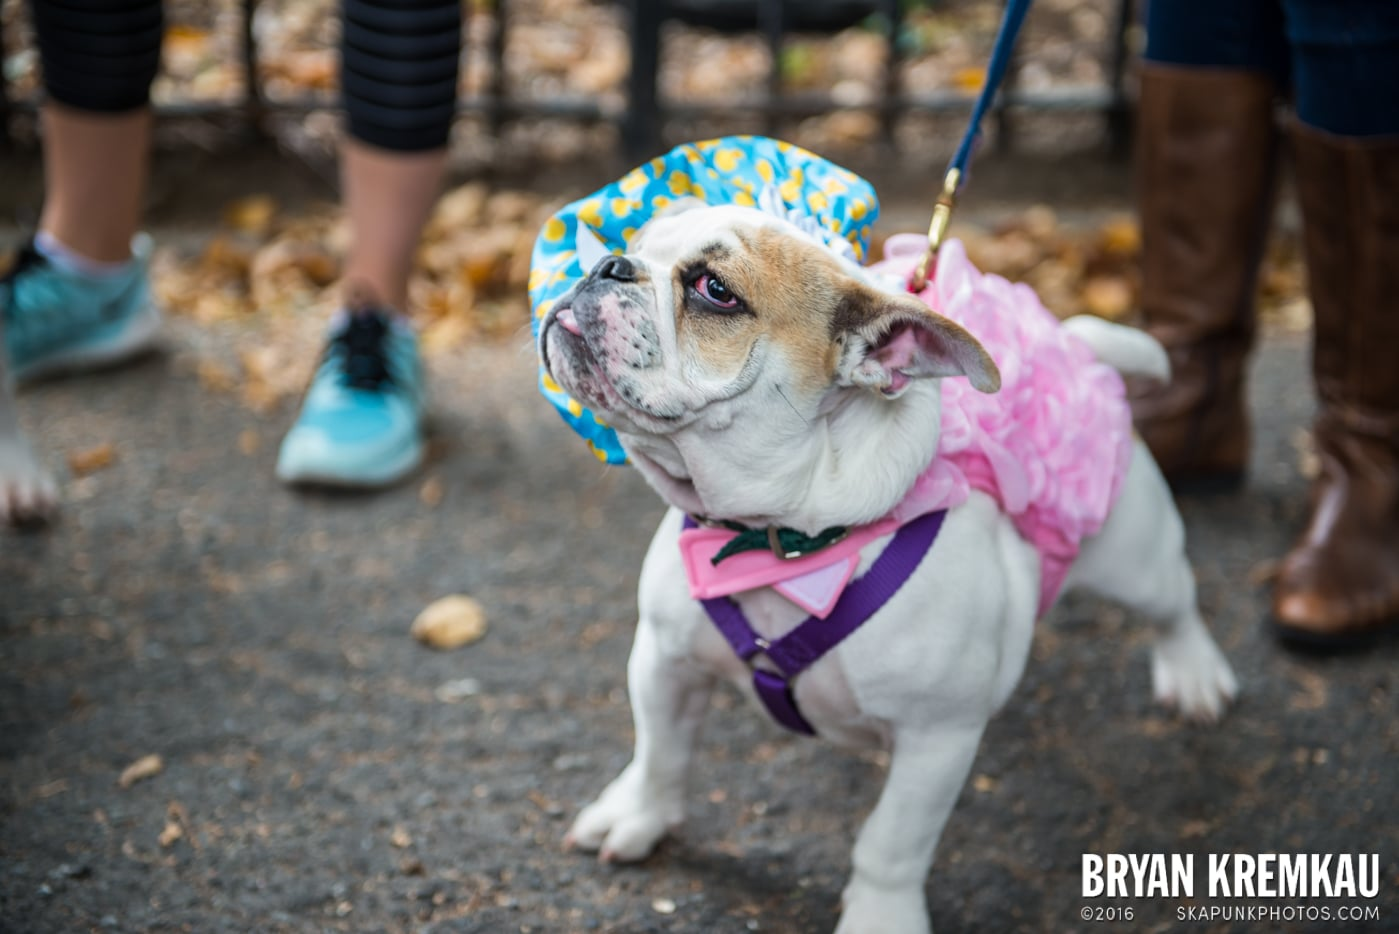 Tompkins Square Halloween Dog Parade 2015 @ Tompkins Square Park, NYC – 10.24.15 (26)